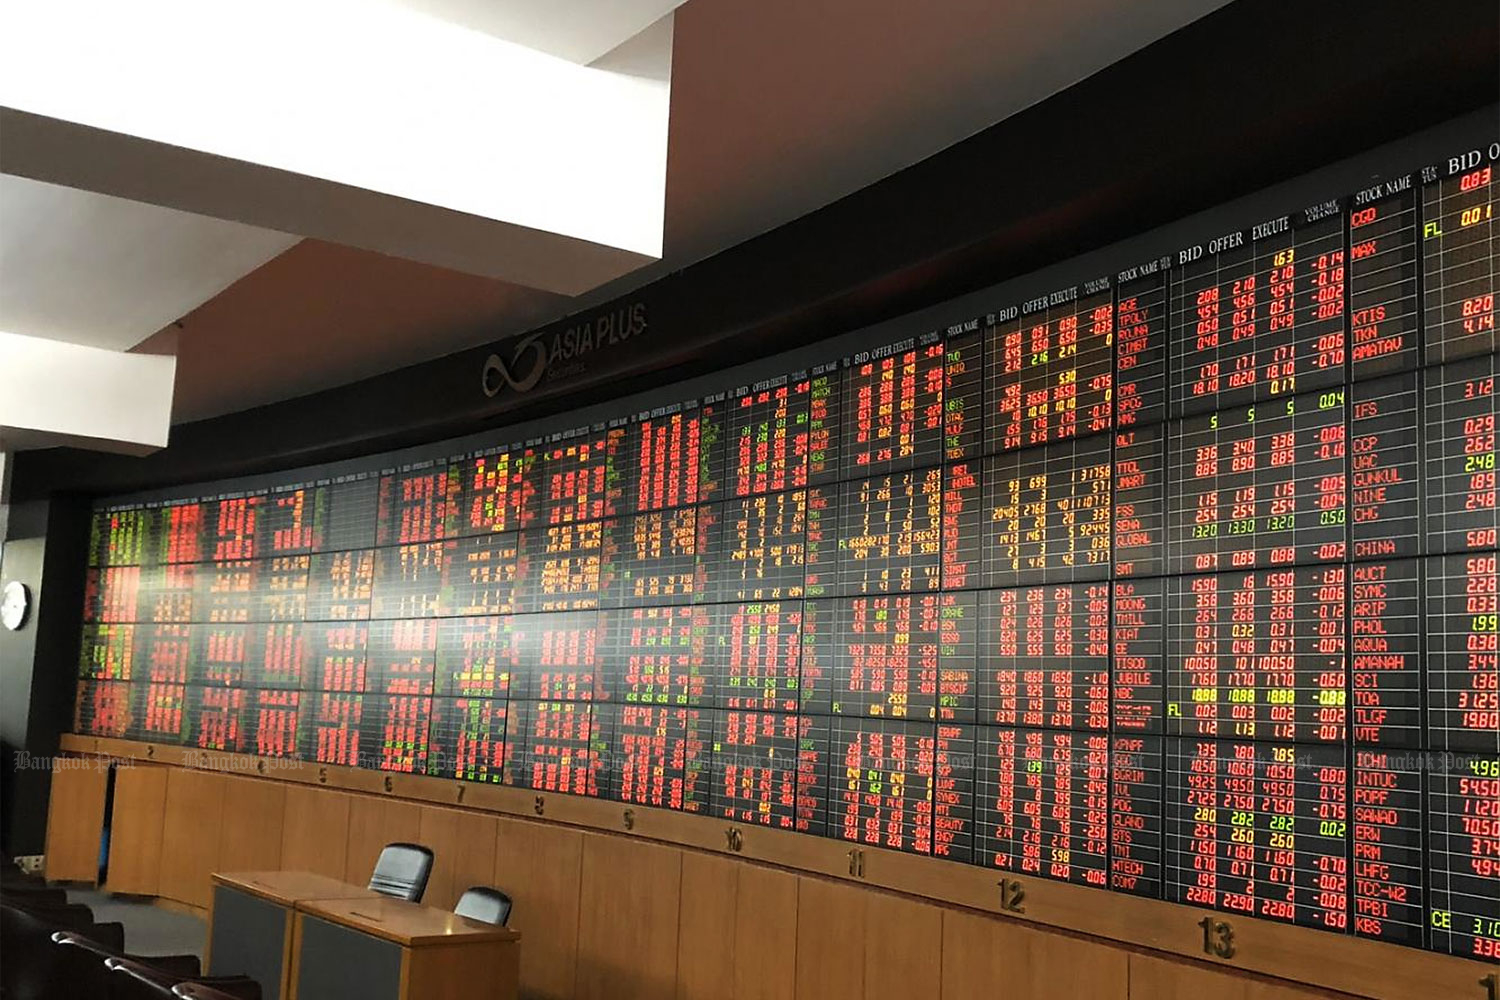 Live share prices on display at a securities firm. The SET continued to be Asia's worst-hit index, down 72.69 points on Wednesday.